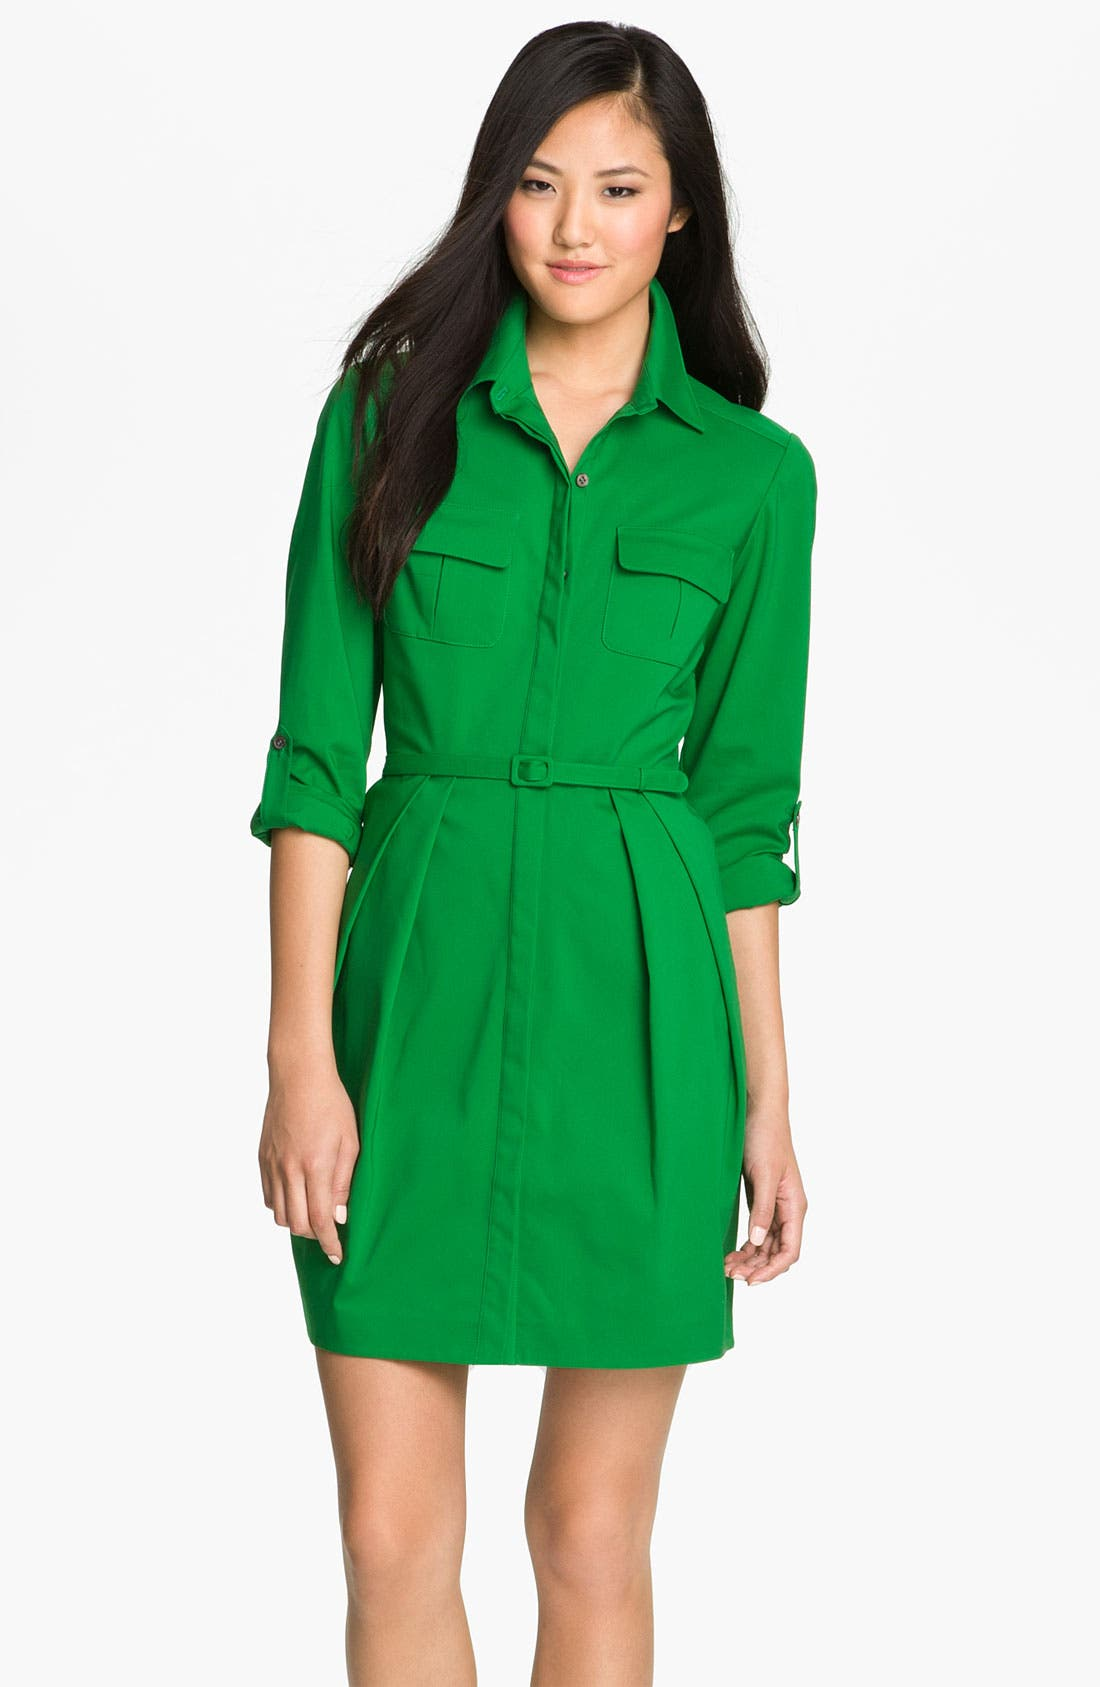 Alternate Image 1 Selected - Vince Camuto Roll Sleeve Shirtdress (Petite)